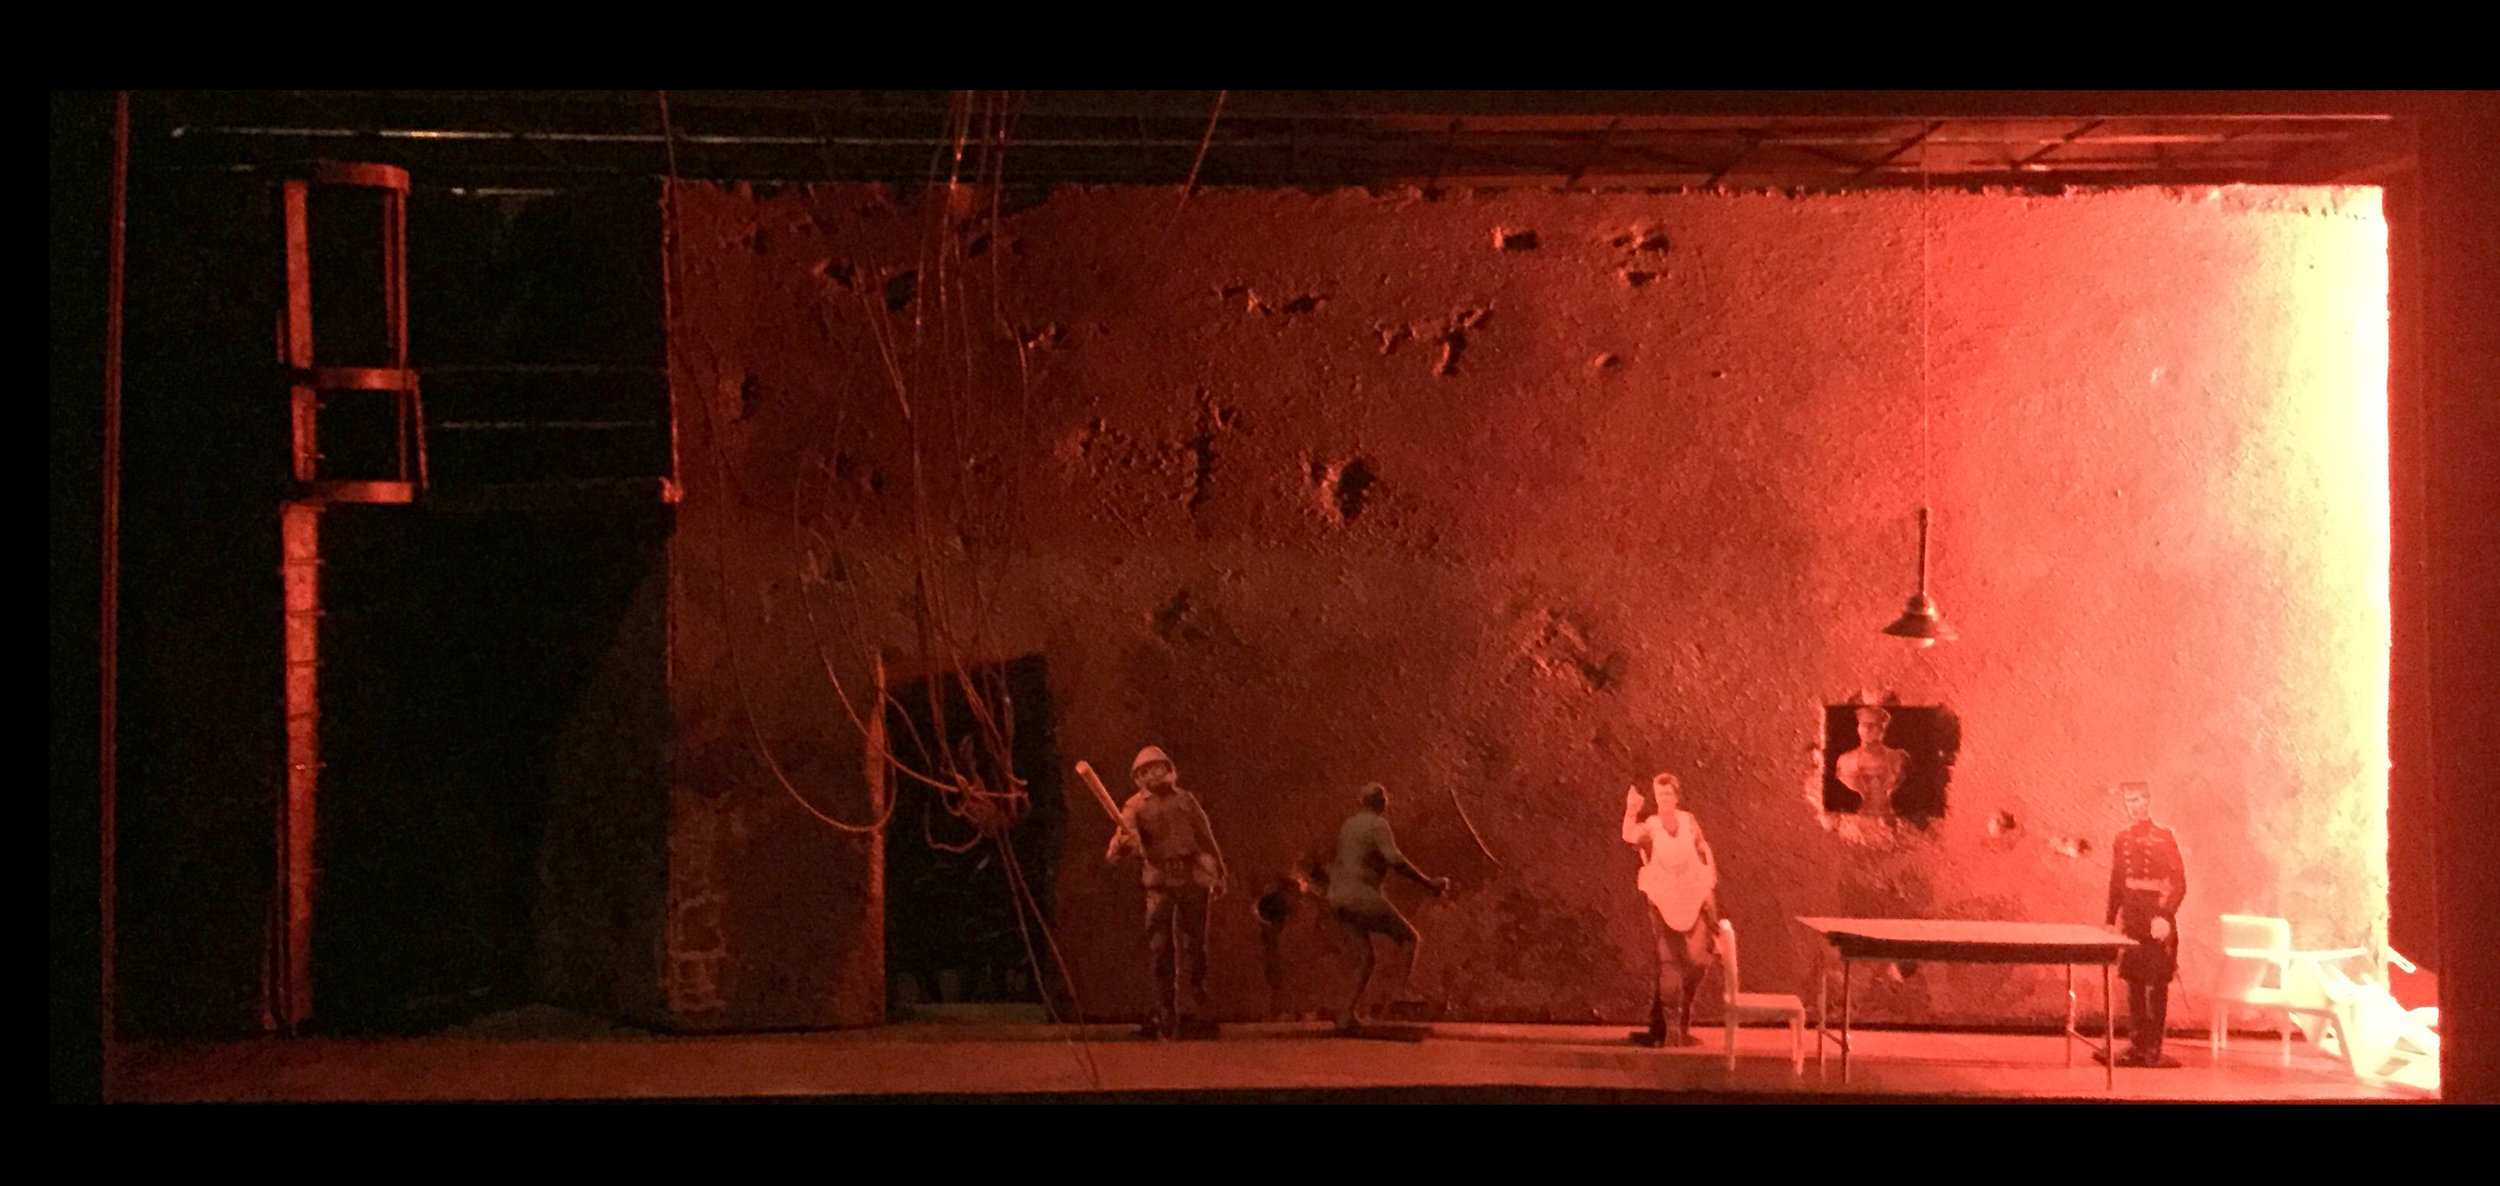 IN THE PENAL COLONY  by Philip Glass  based on the novella by Franz Kafka   A proposed production for the Irene Diamond Theater   Scenic Design by Andrew D. Moerdyk